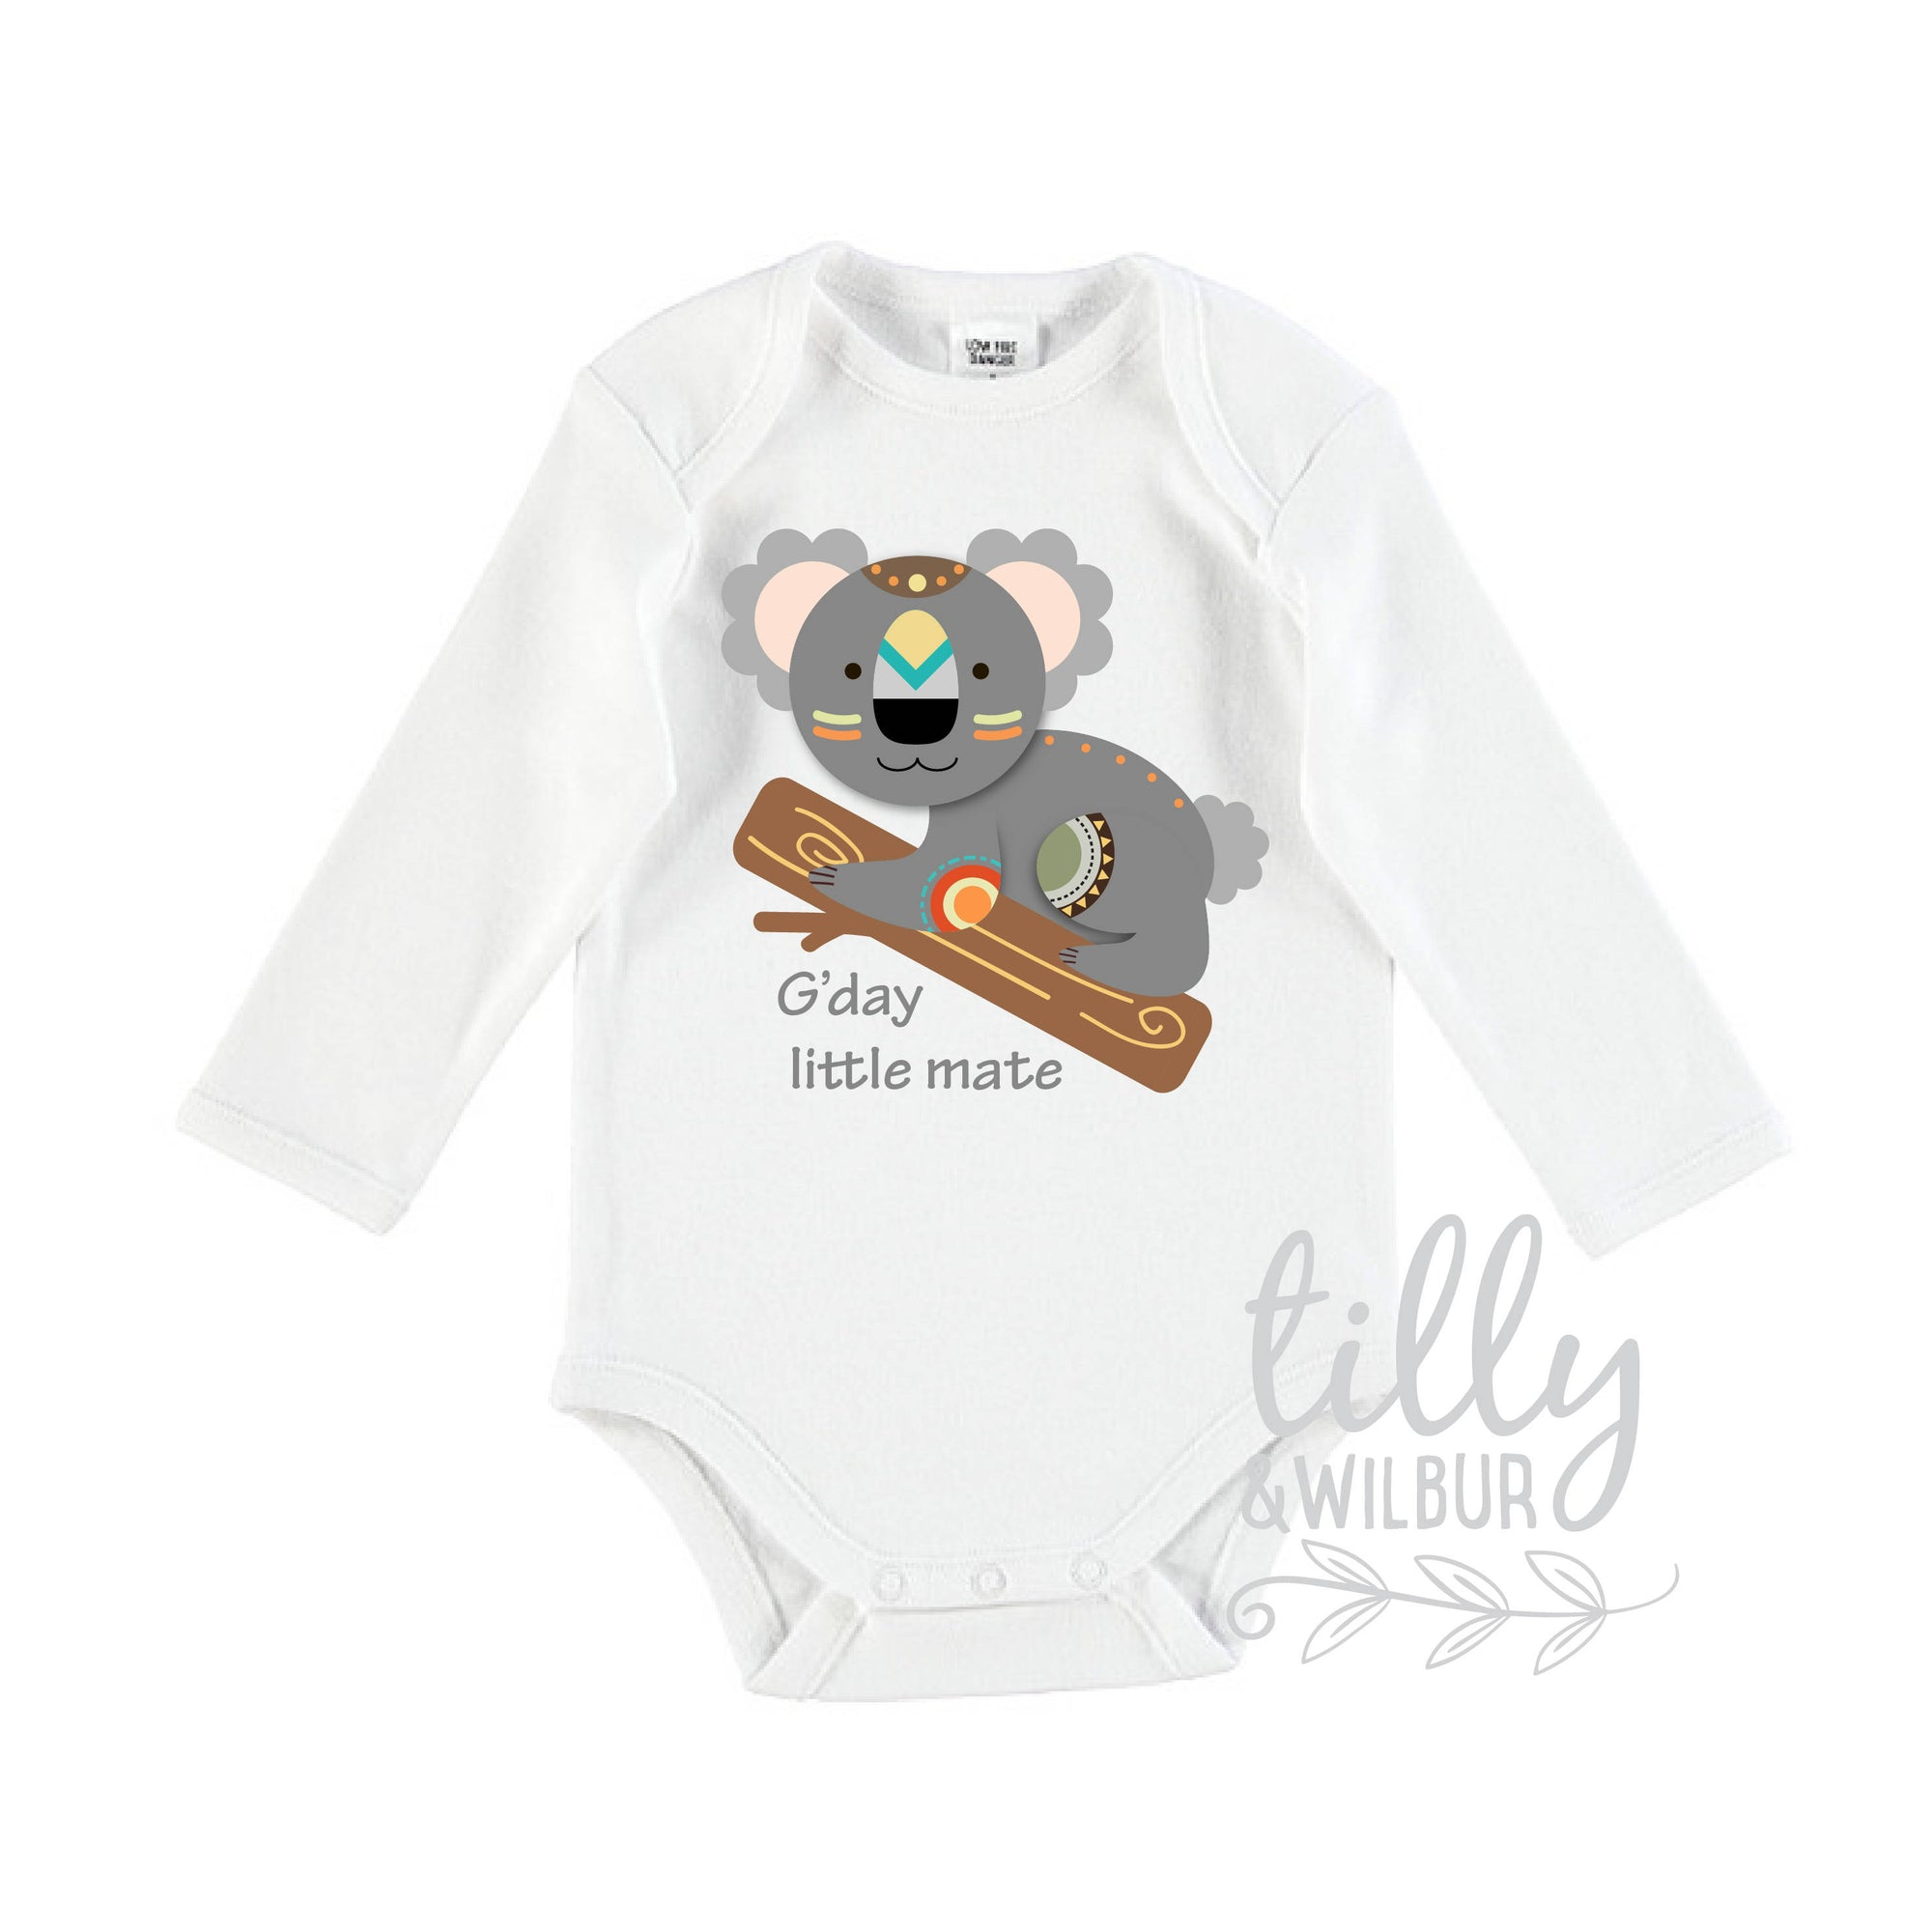 Koala Bear Baby Bodysuit, G'day Little Mate, Baby Shower, New Baby Gift, Newborn Gift, Koala Bear Gift, Australiana, Koala Baby, U-W-BS